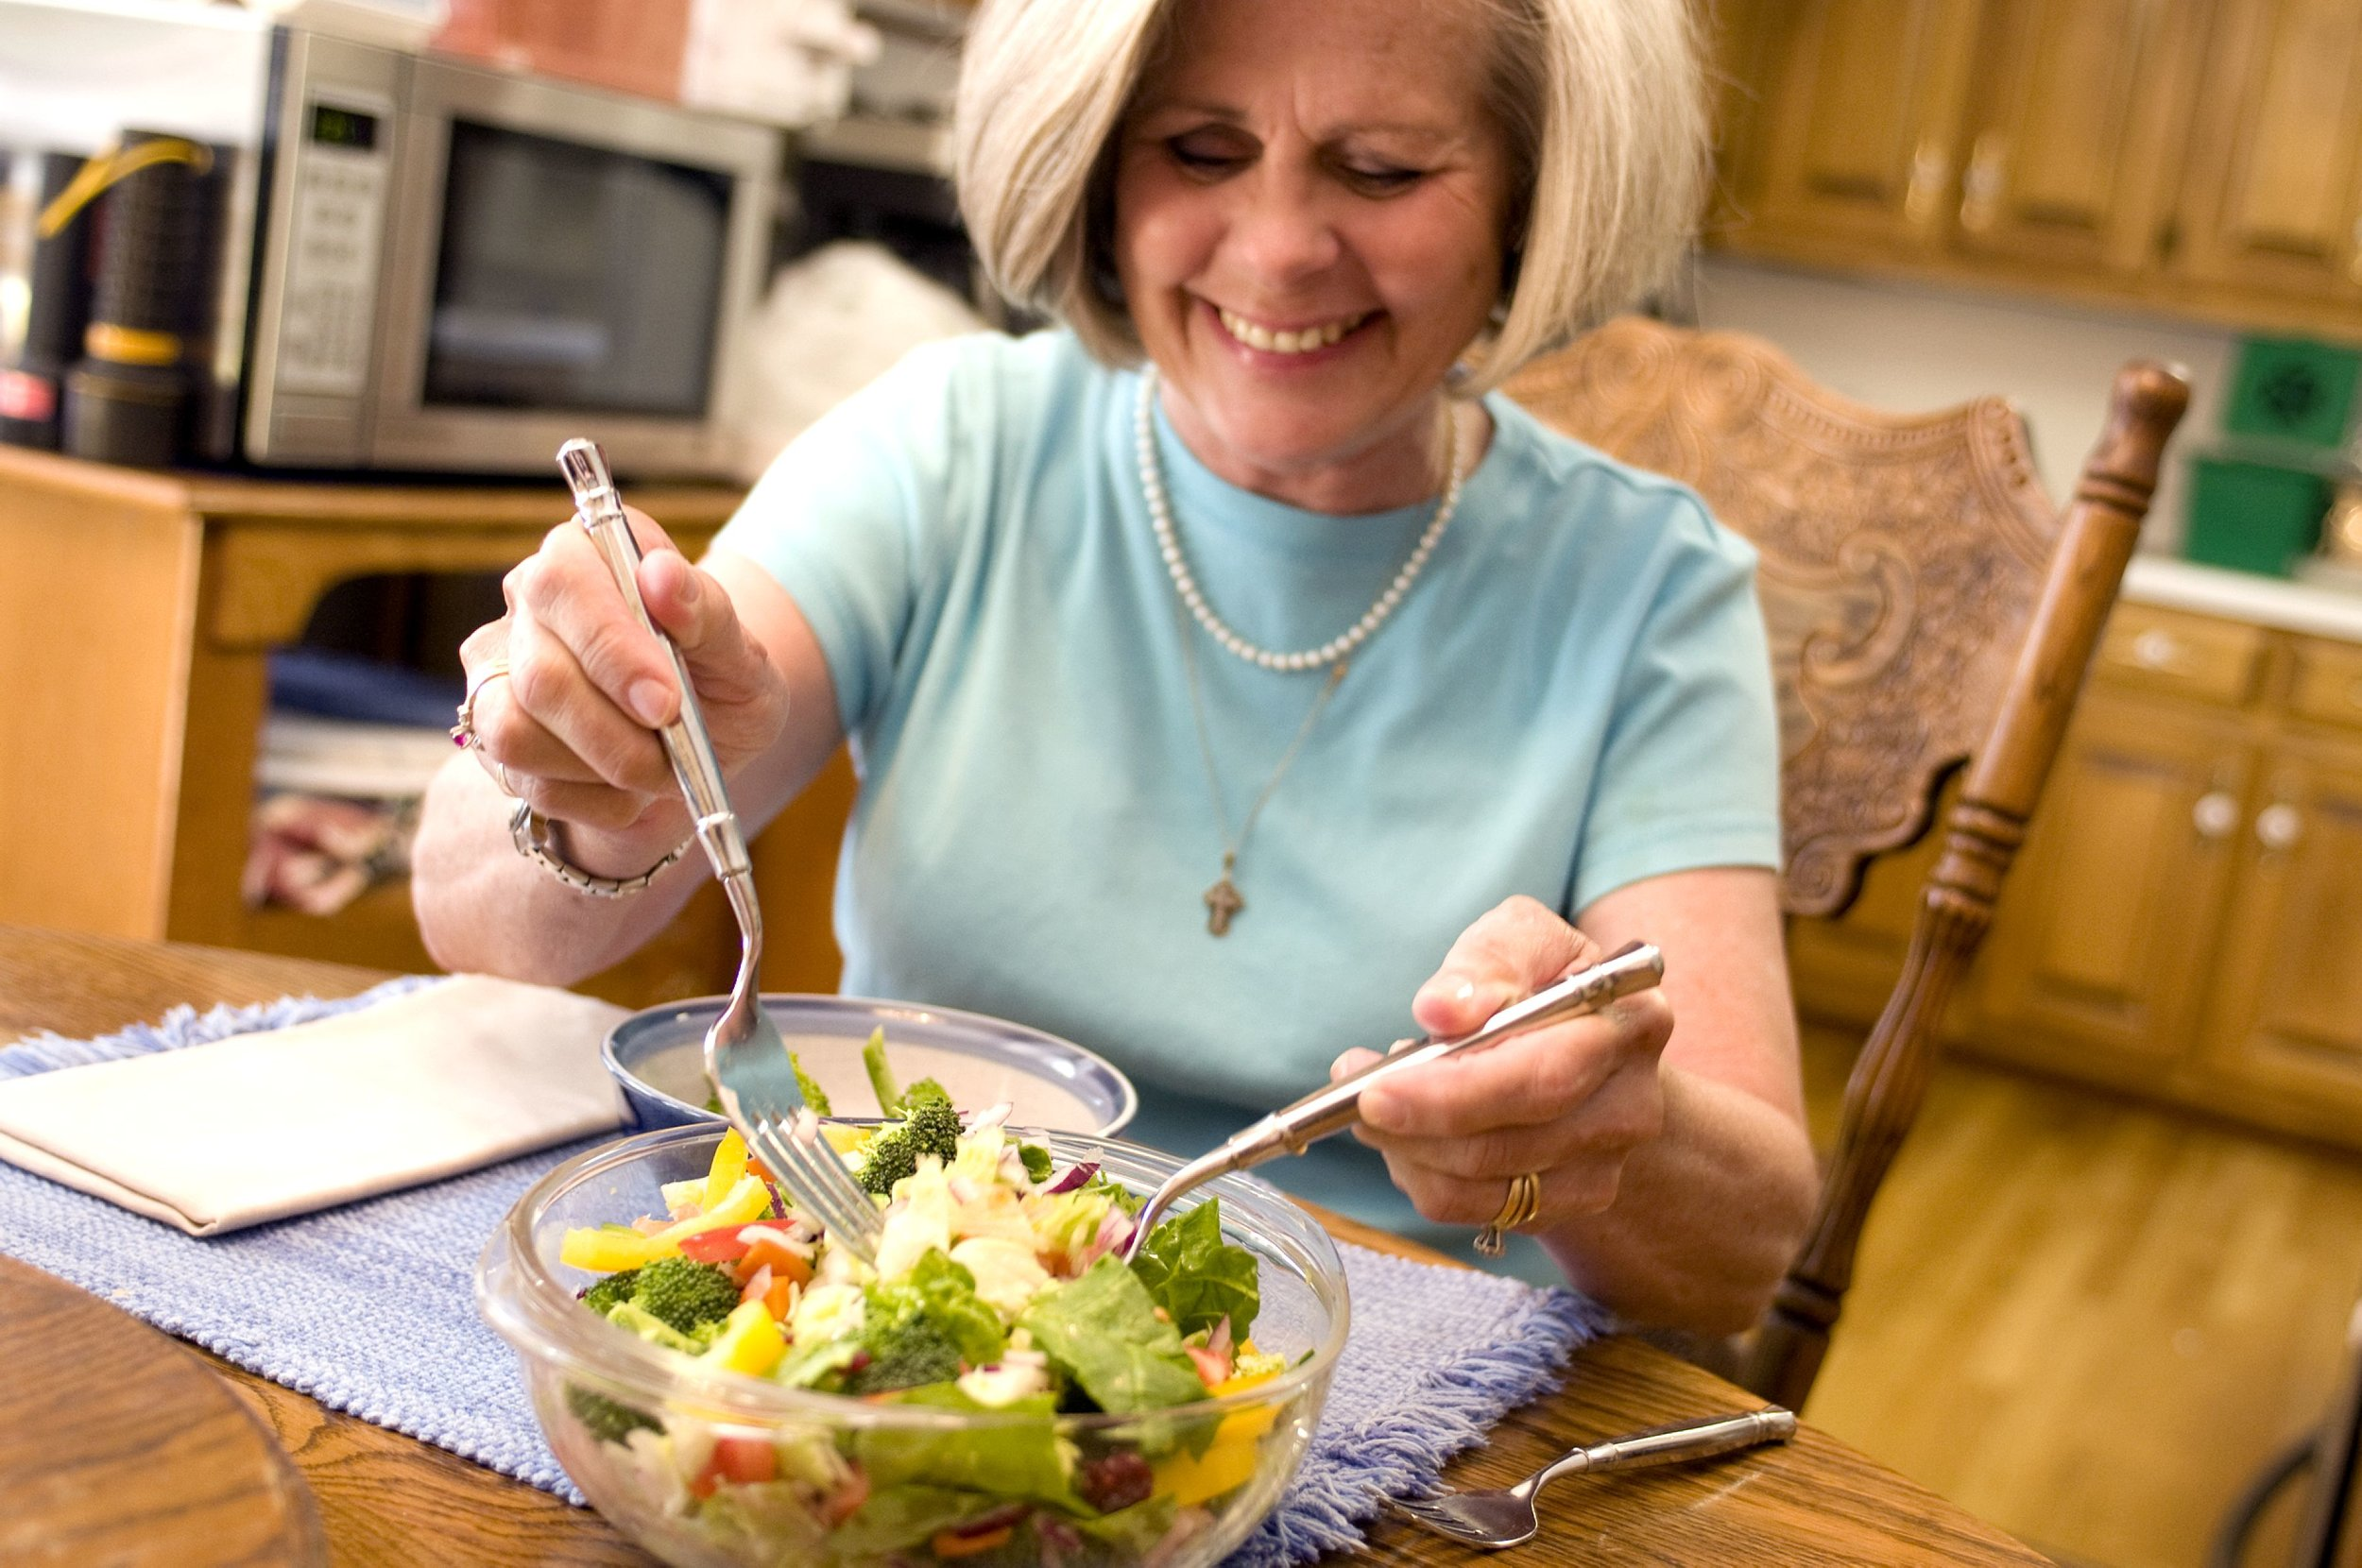 Eating fruit and vegetables in the menopause